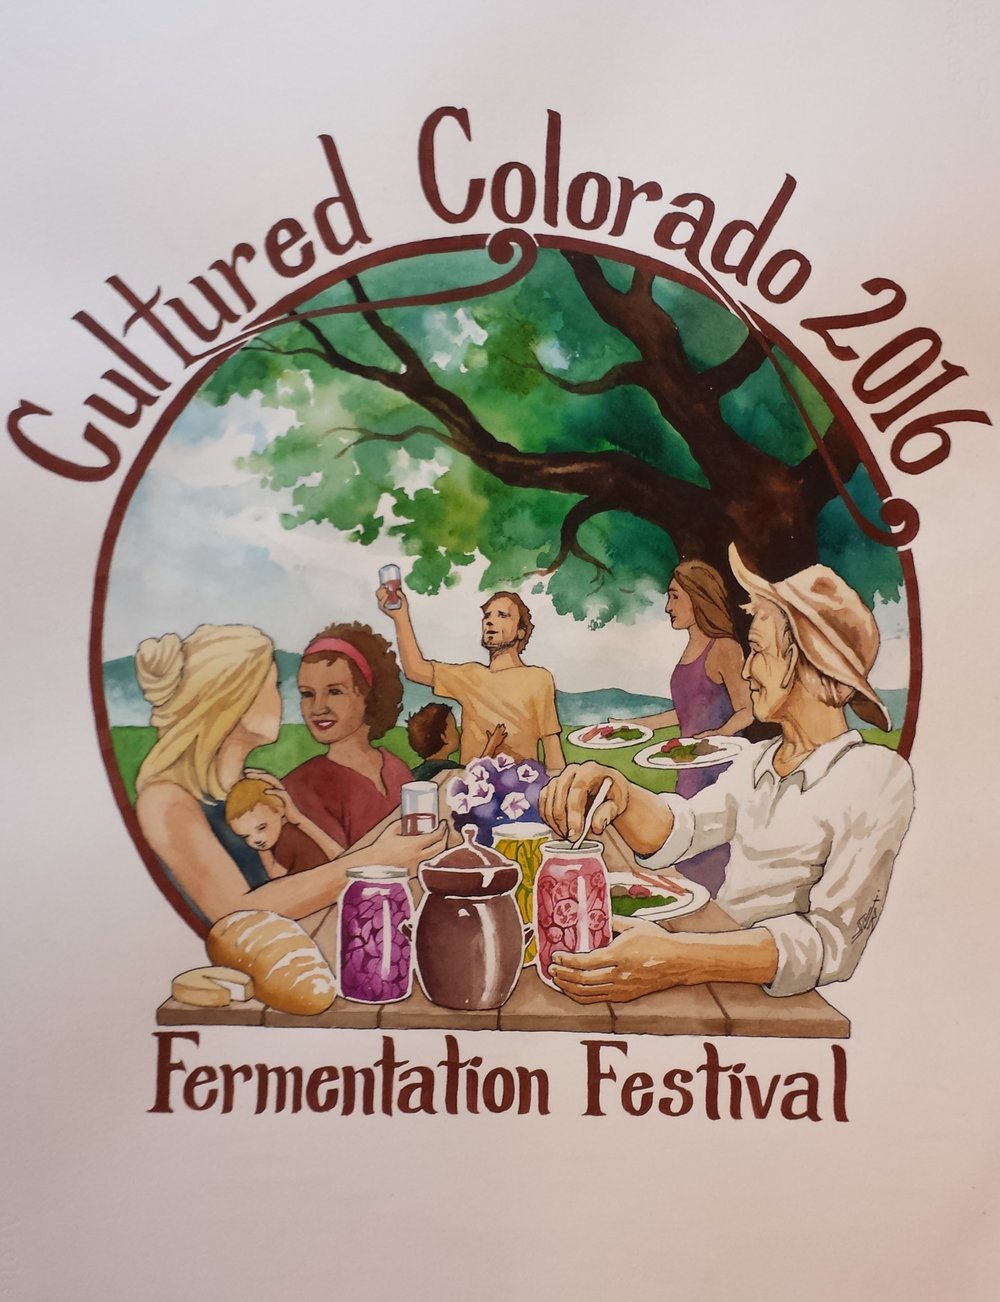 low rez - Cultured Colorado 2016 Logo final.jpg